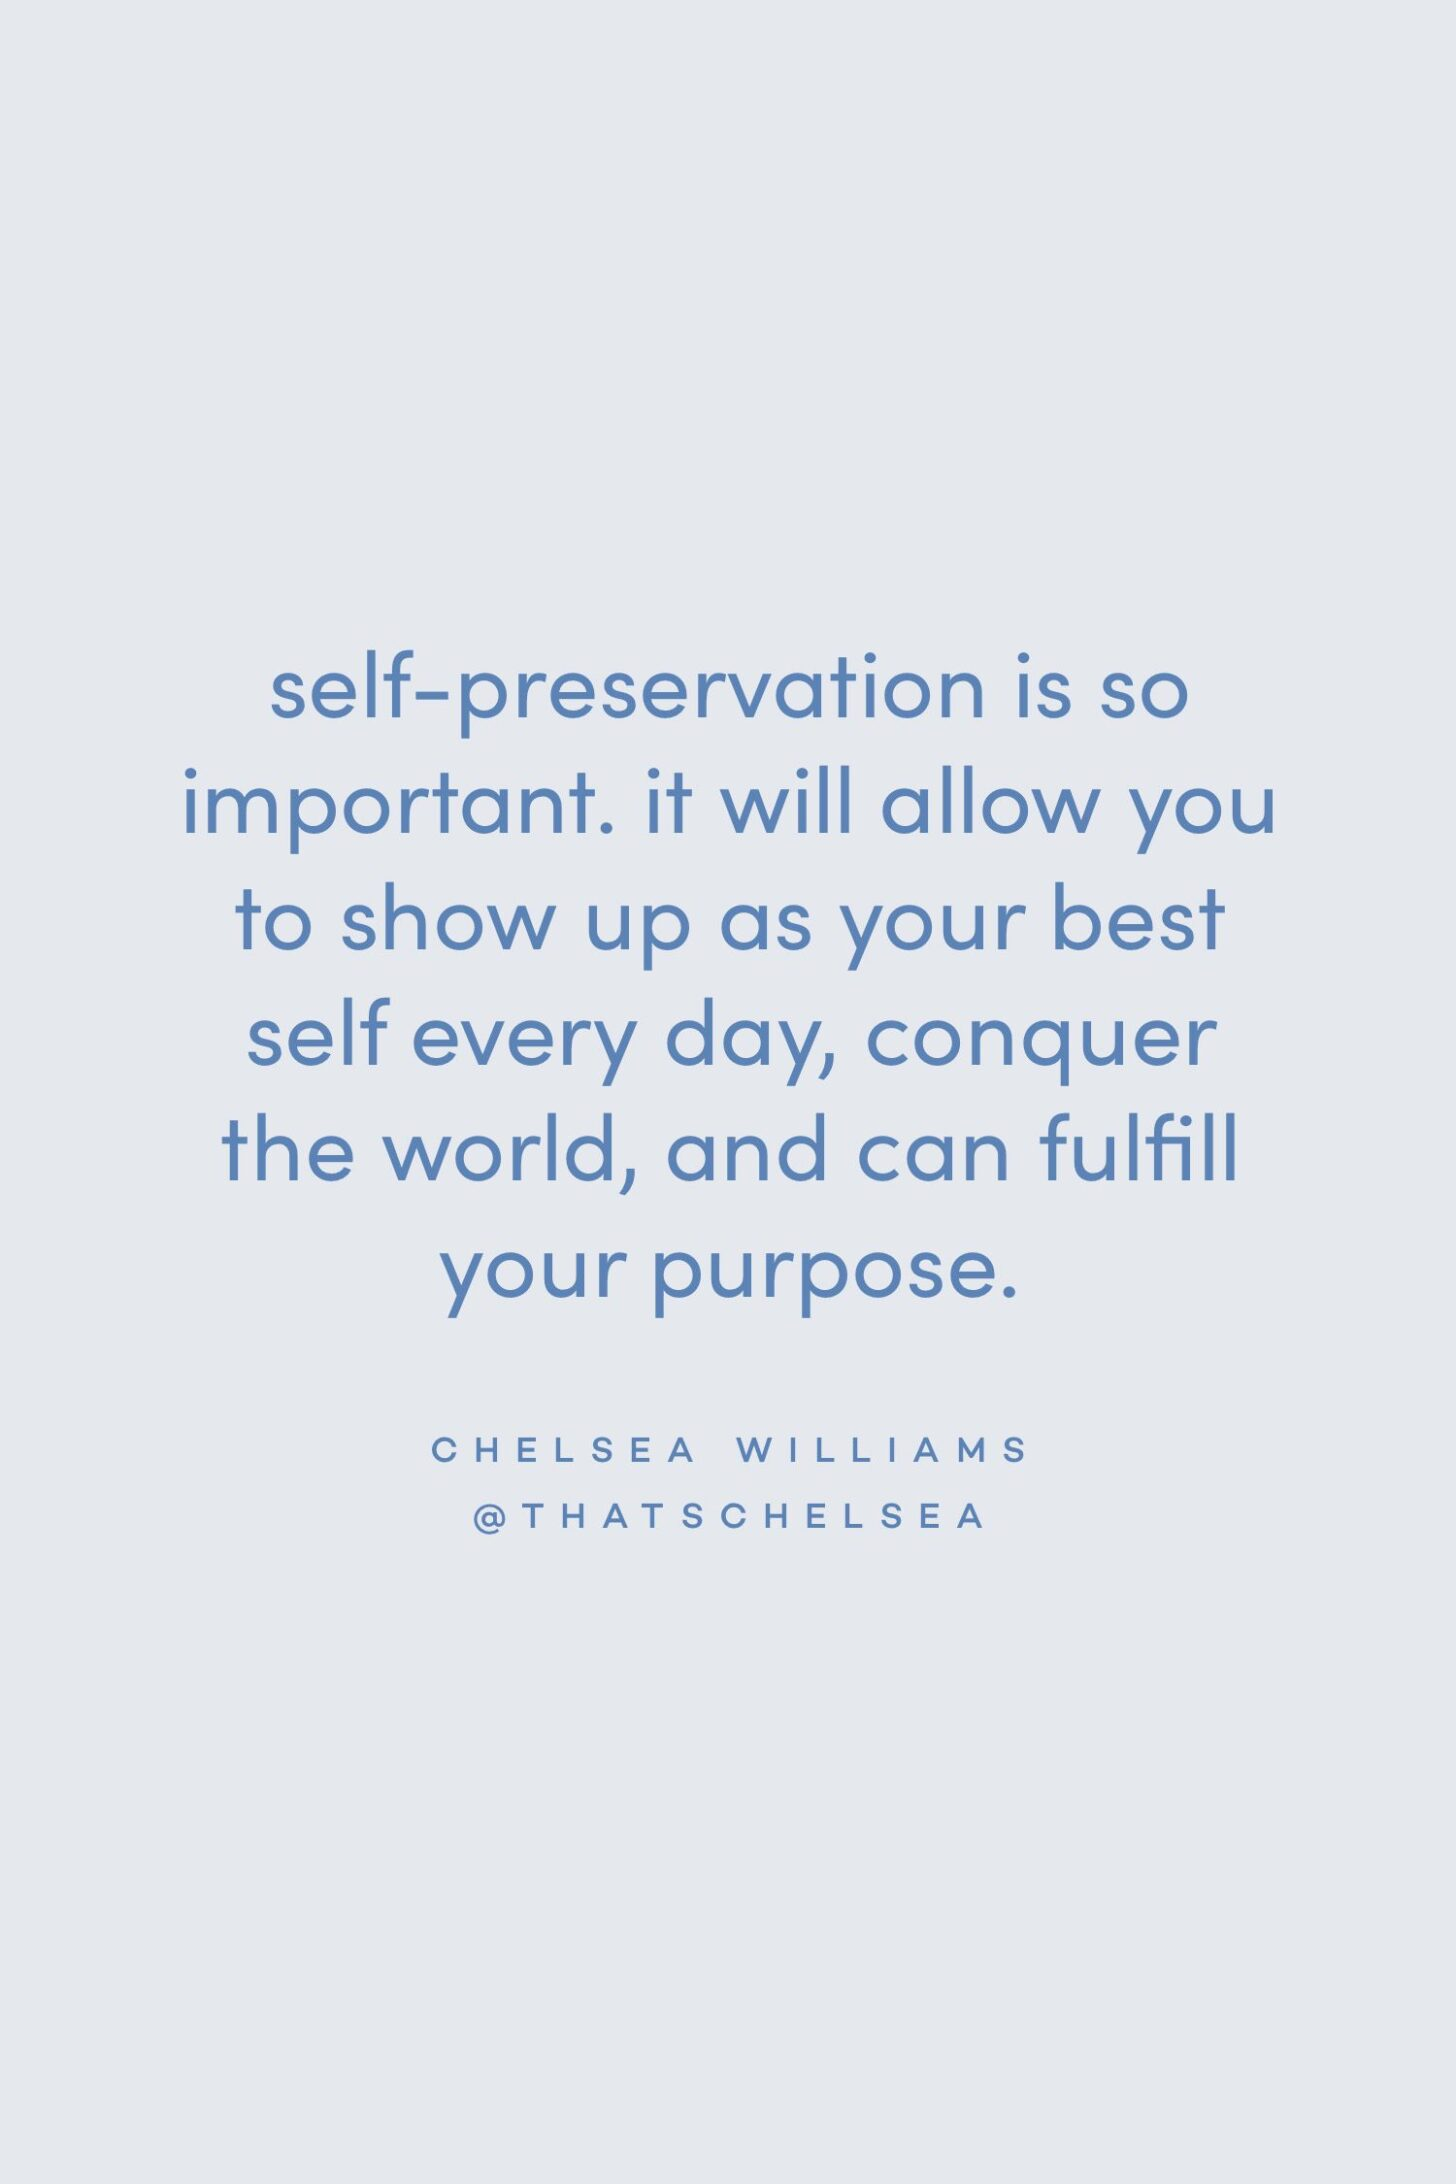 Quote on self-preservation by Chelsea Williams on the Feel Good Effect Podcast #realfoodwholelife #feelgoodeffectpodcast #motivationalquote #inspirationalquote #positivityquote #selfpreservationquote #selfcarequote #purposequote #resiliencequote #passionquote